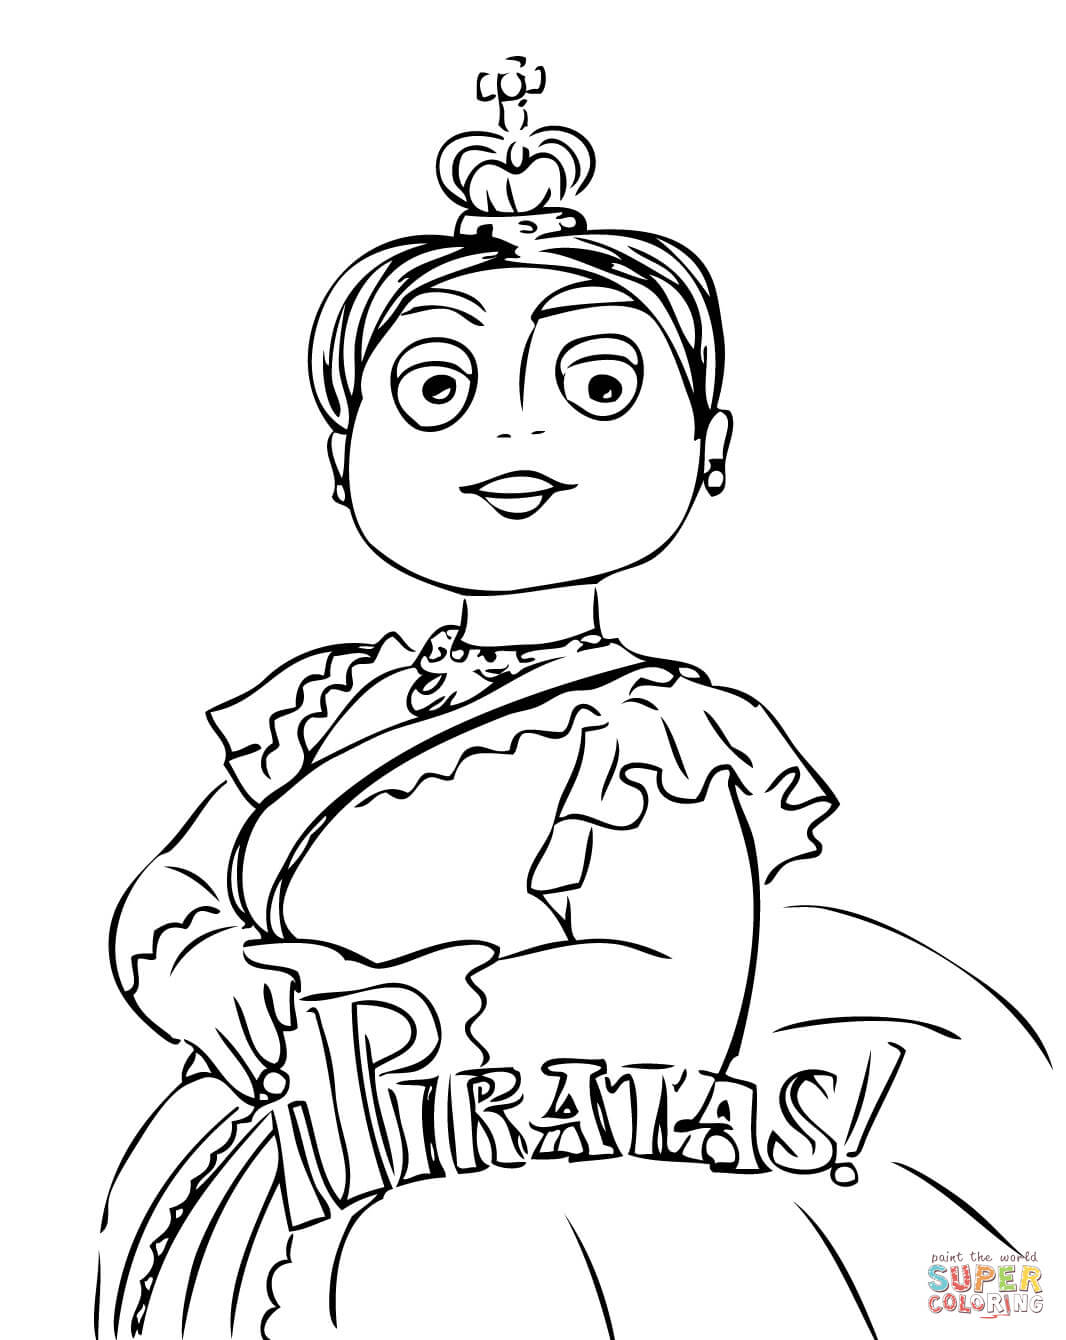 queen coloring pictures queen victoria coloring page free printable coloring pages coloring pictures queen